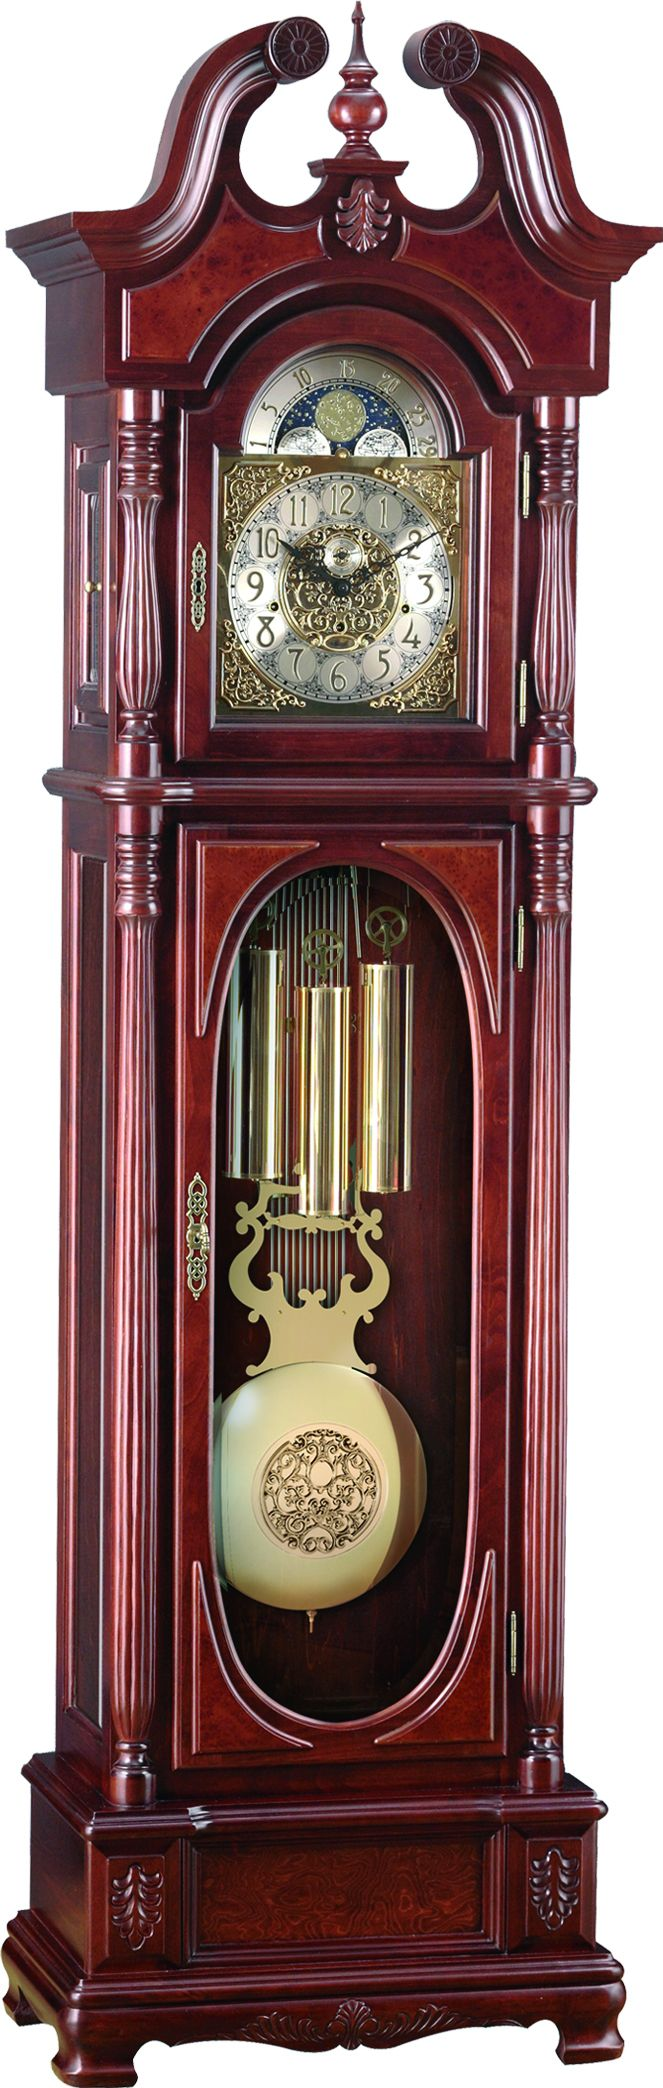 Hermle Triple Chiming Cherry Finish Charlottesville 01171 N91161 Grandfather Clock Clock Antique Wall Clock